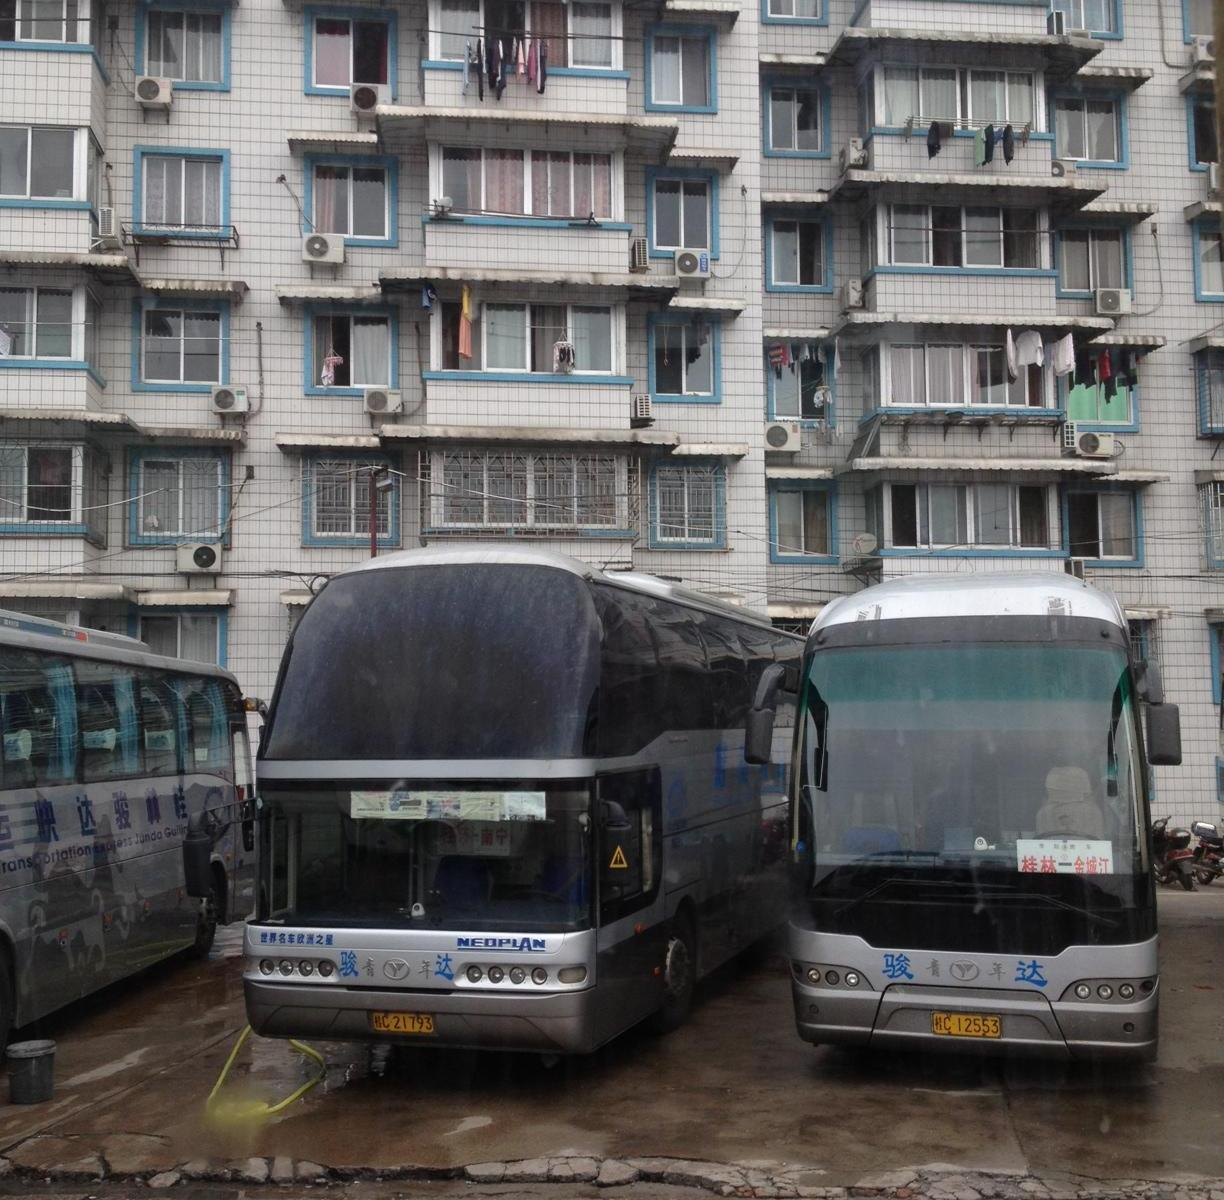 Coach buses parked in front of apartment buildings.